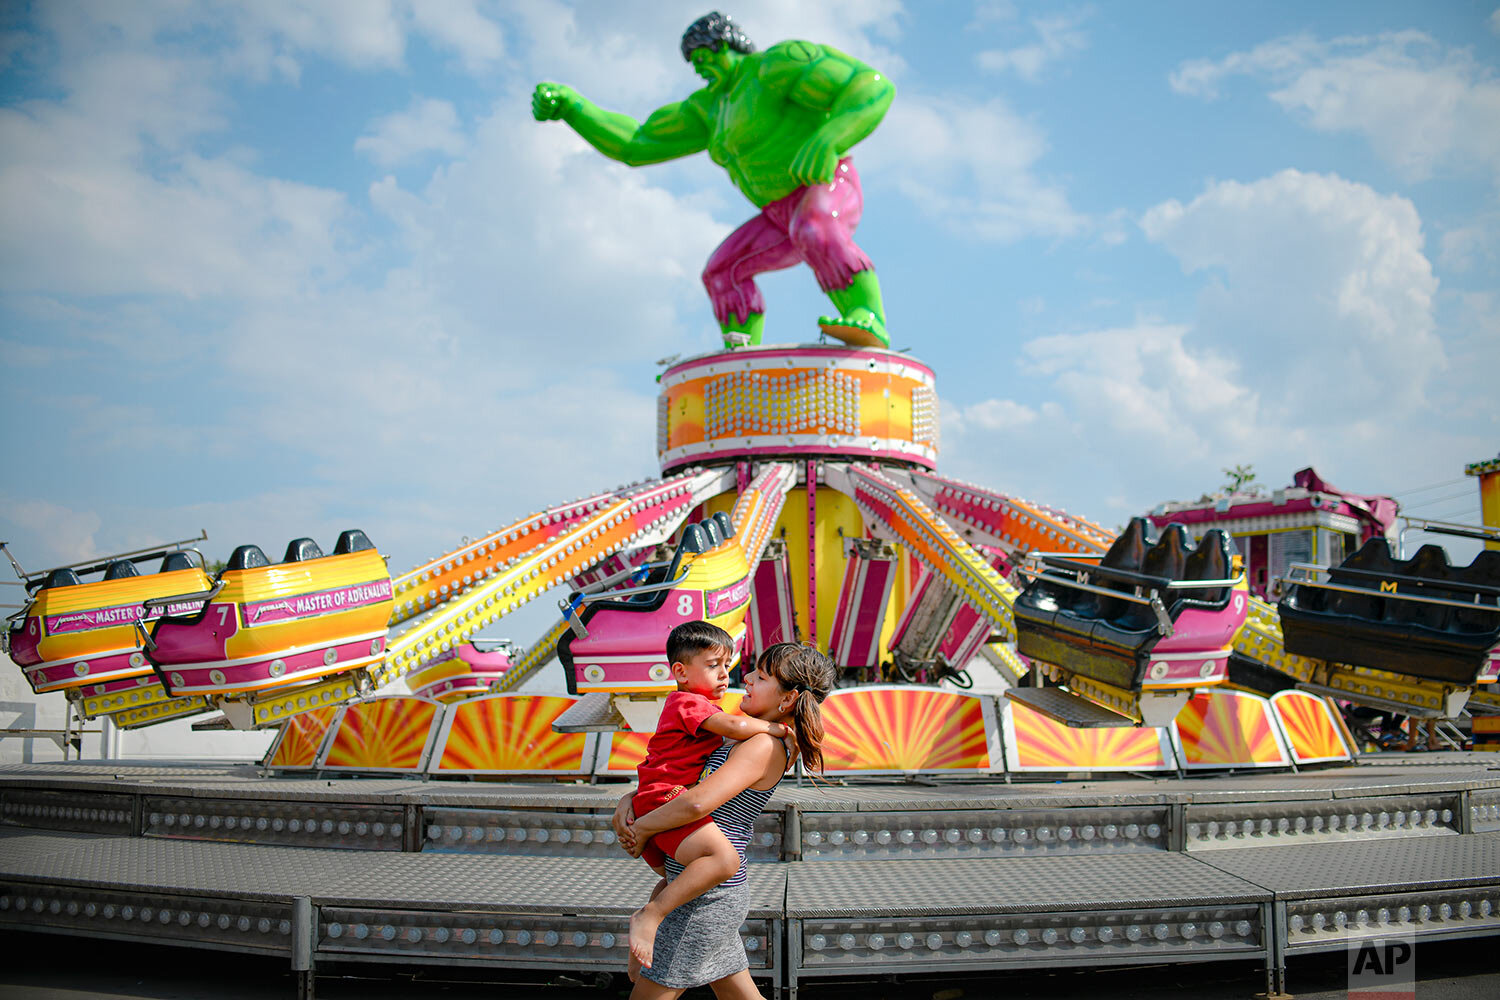 A girl carries a little boy by a merry go round at a fair in Calarasi, southern Romania, Sept. 7, 2019. (AP Photo/Andreea Alexandru)